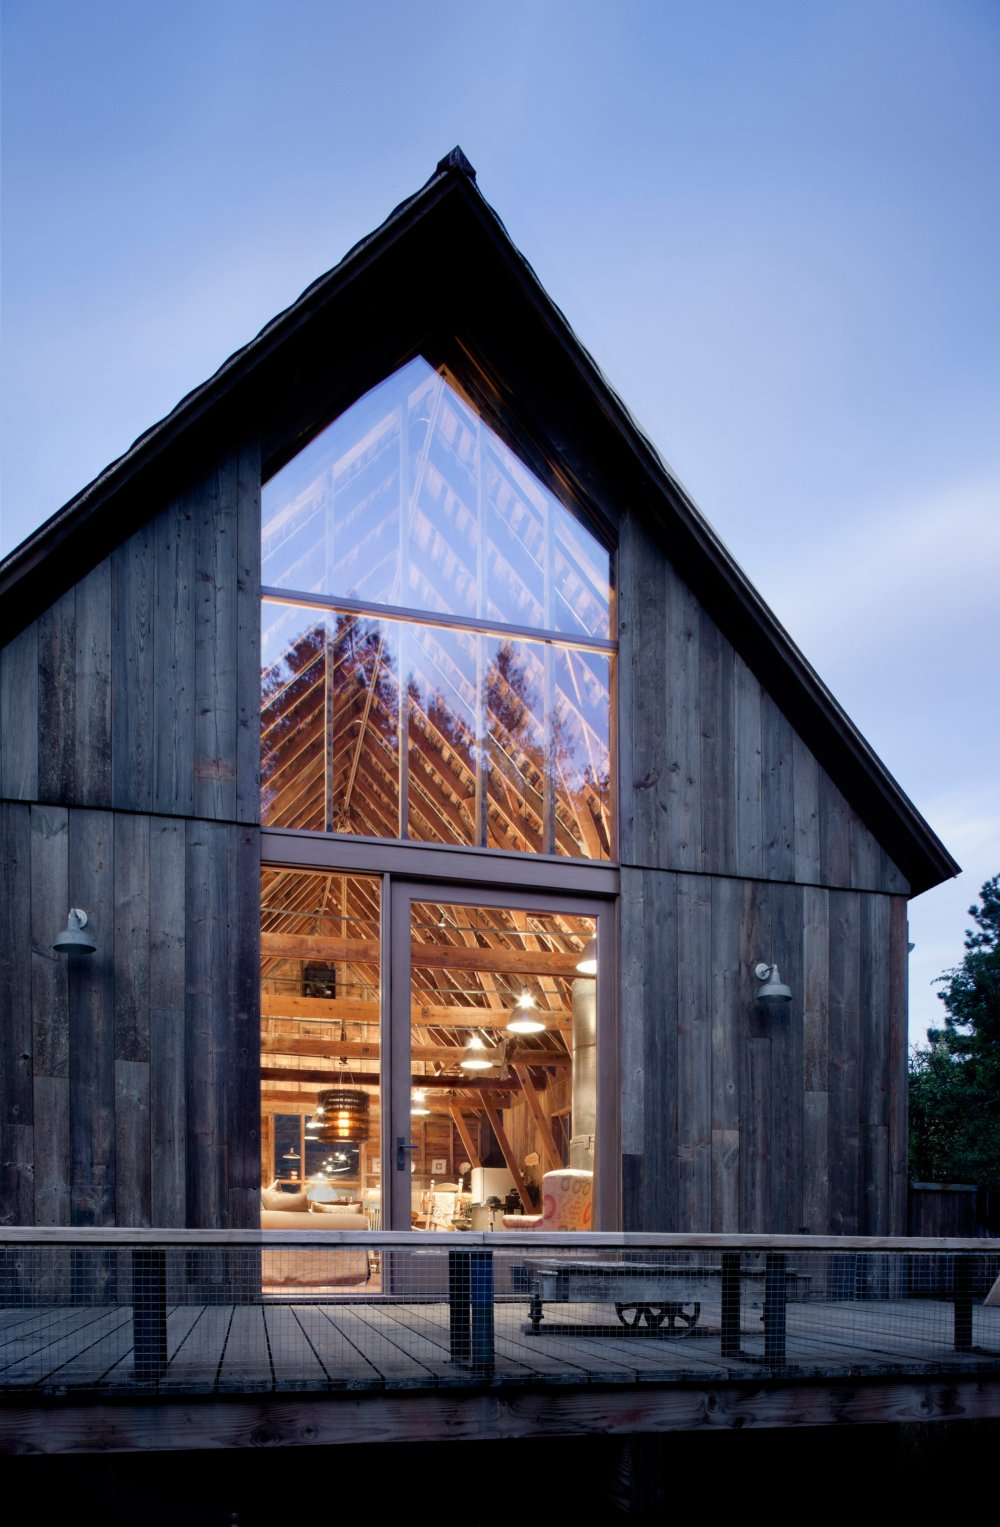 canyon-barn-mw-works-architecture-east-cascades-usa_dezeen_2364_col_12